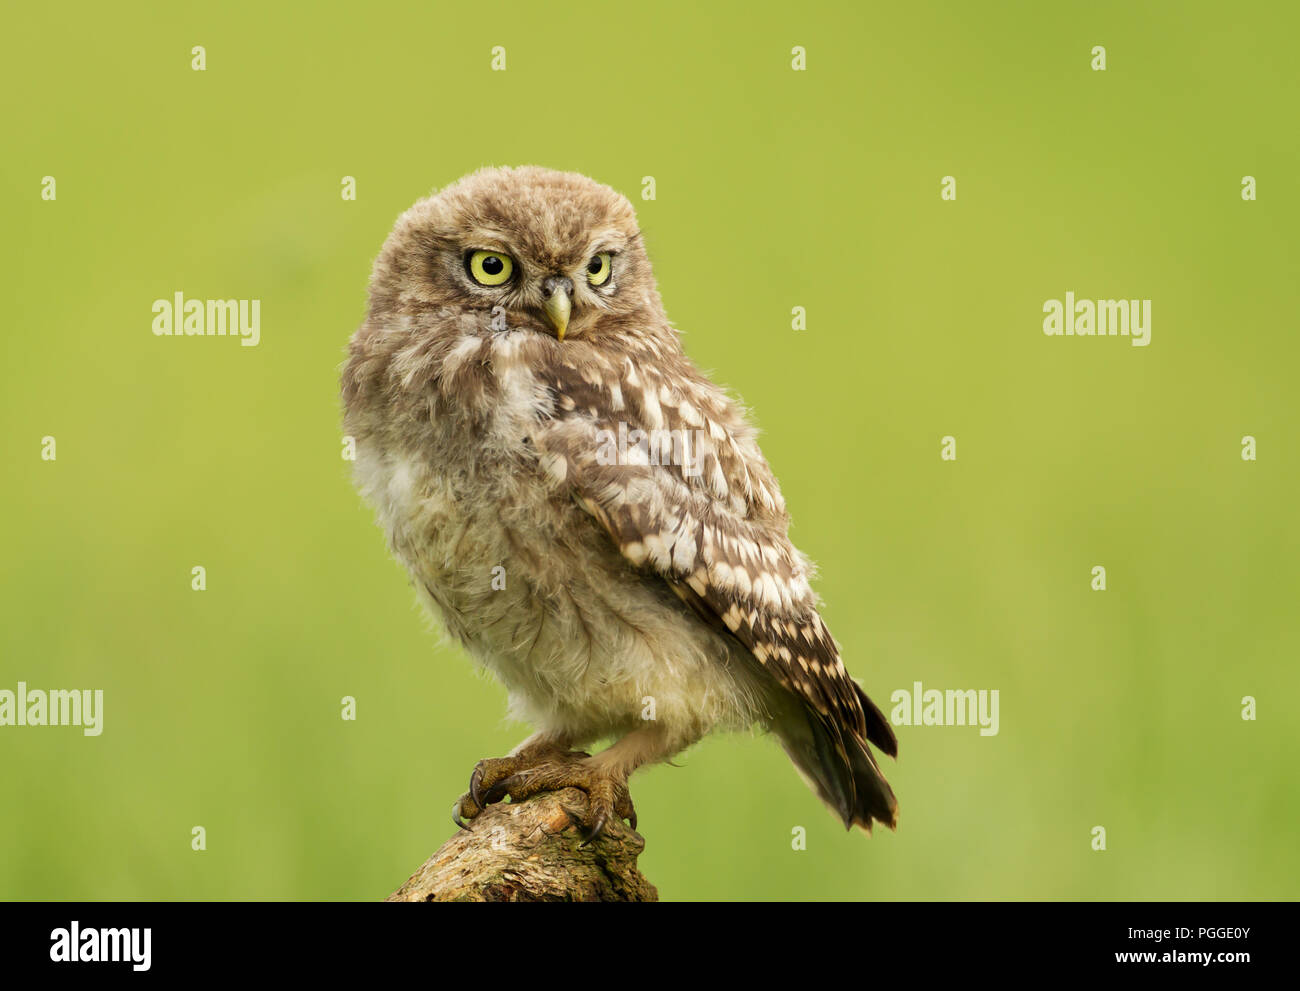 Close-up of a Juvenile Little owl perching on a post against green background, UK. - Stock Image